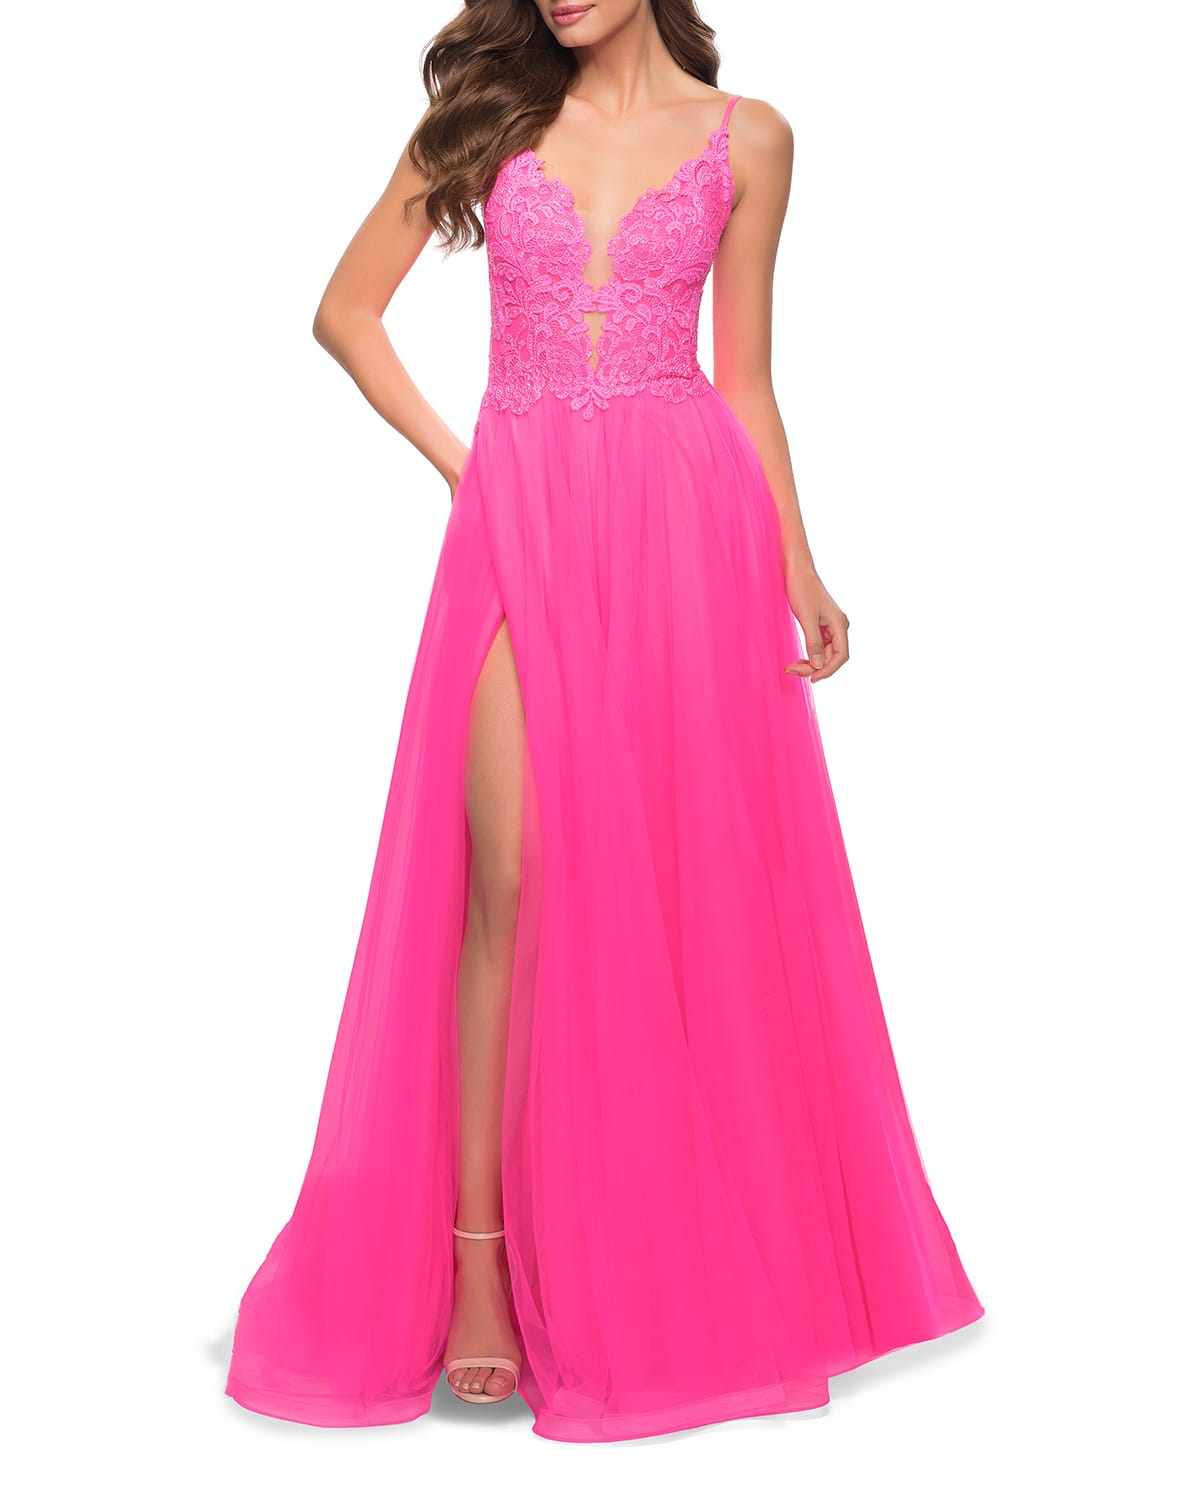 Lace Applique Sleeveless Tulle A-Line Gown